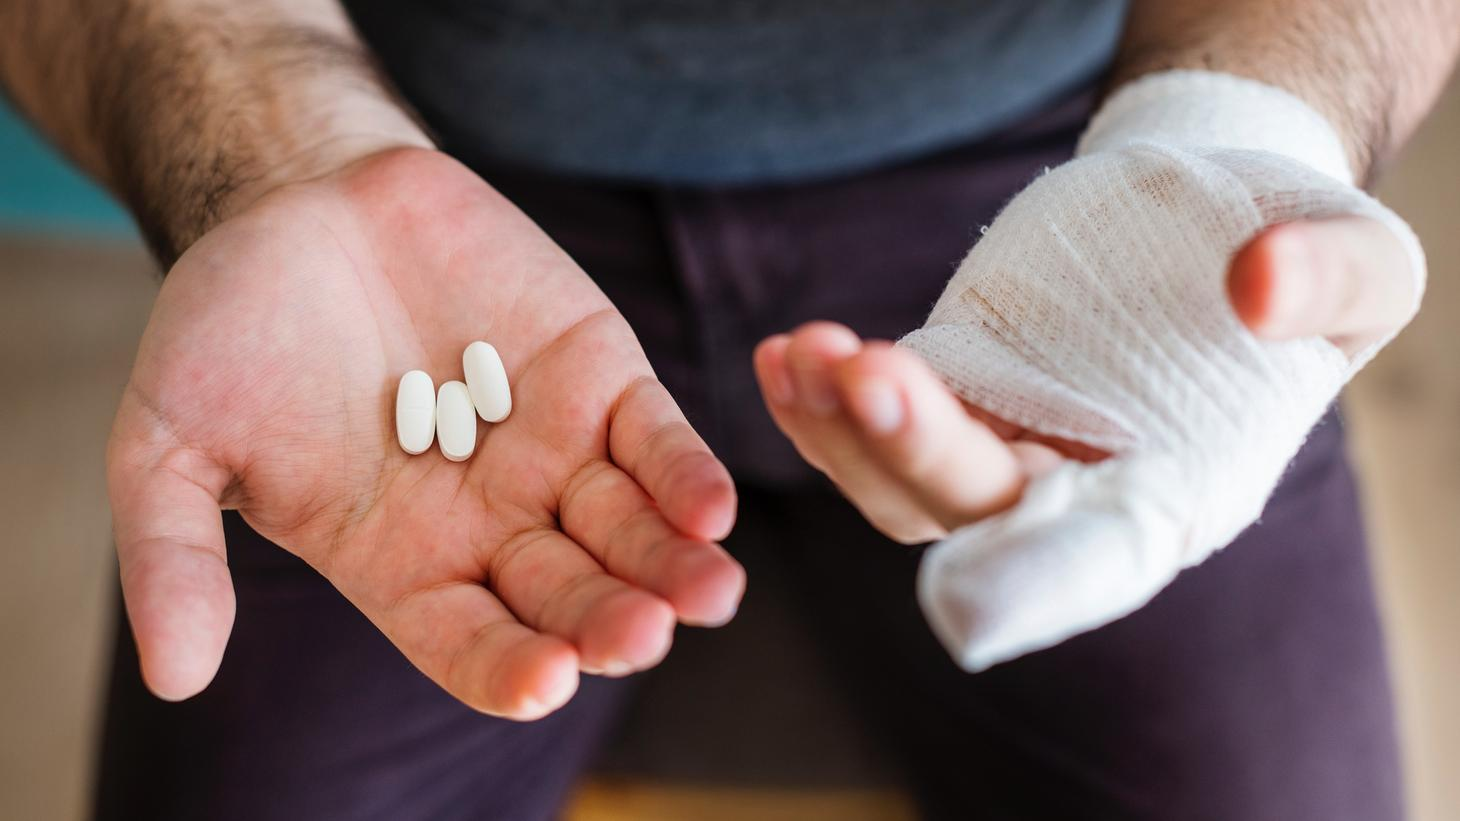 Close-up of two hands, one with a bandage and the other with 3 pills